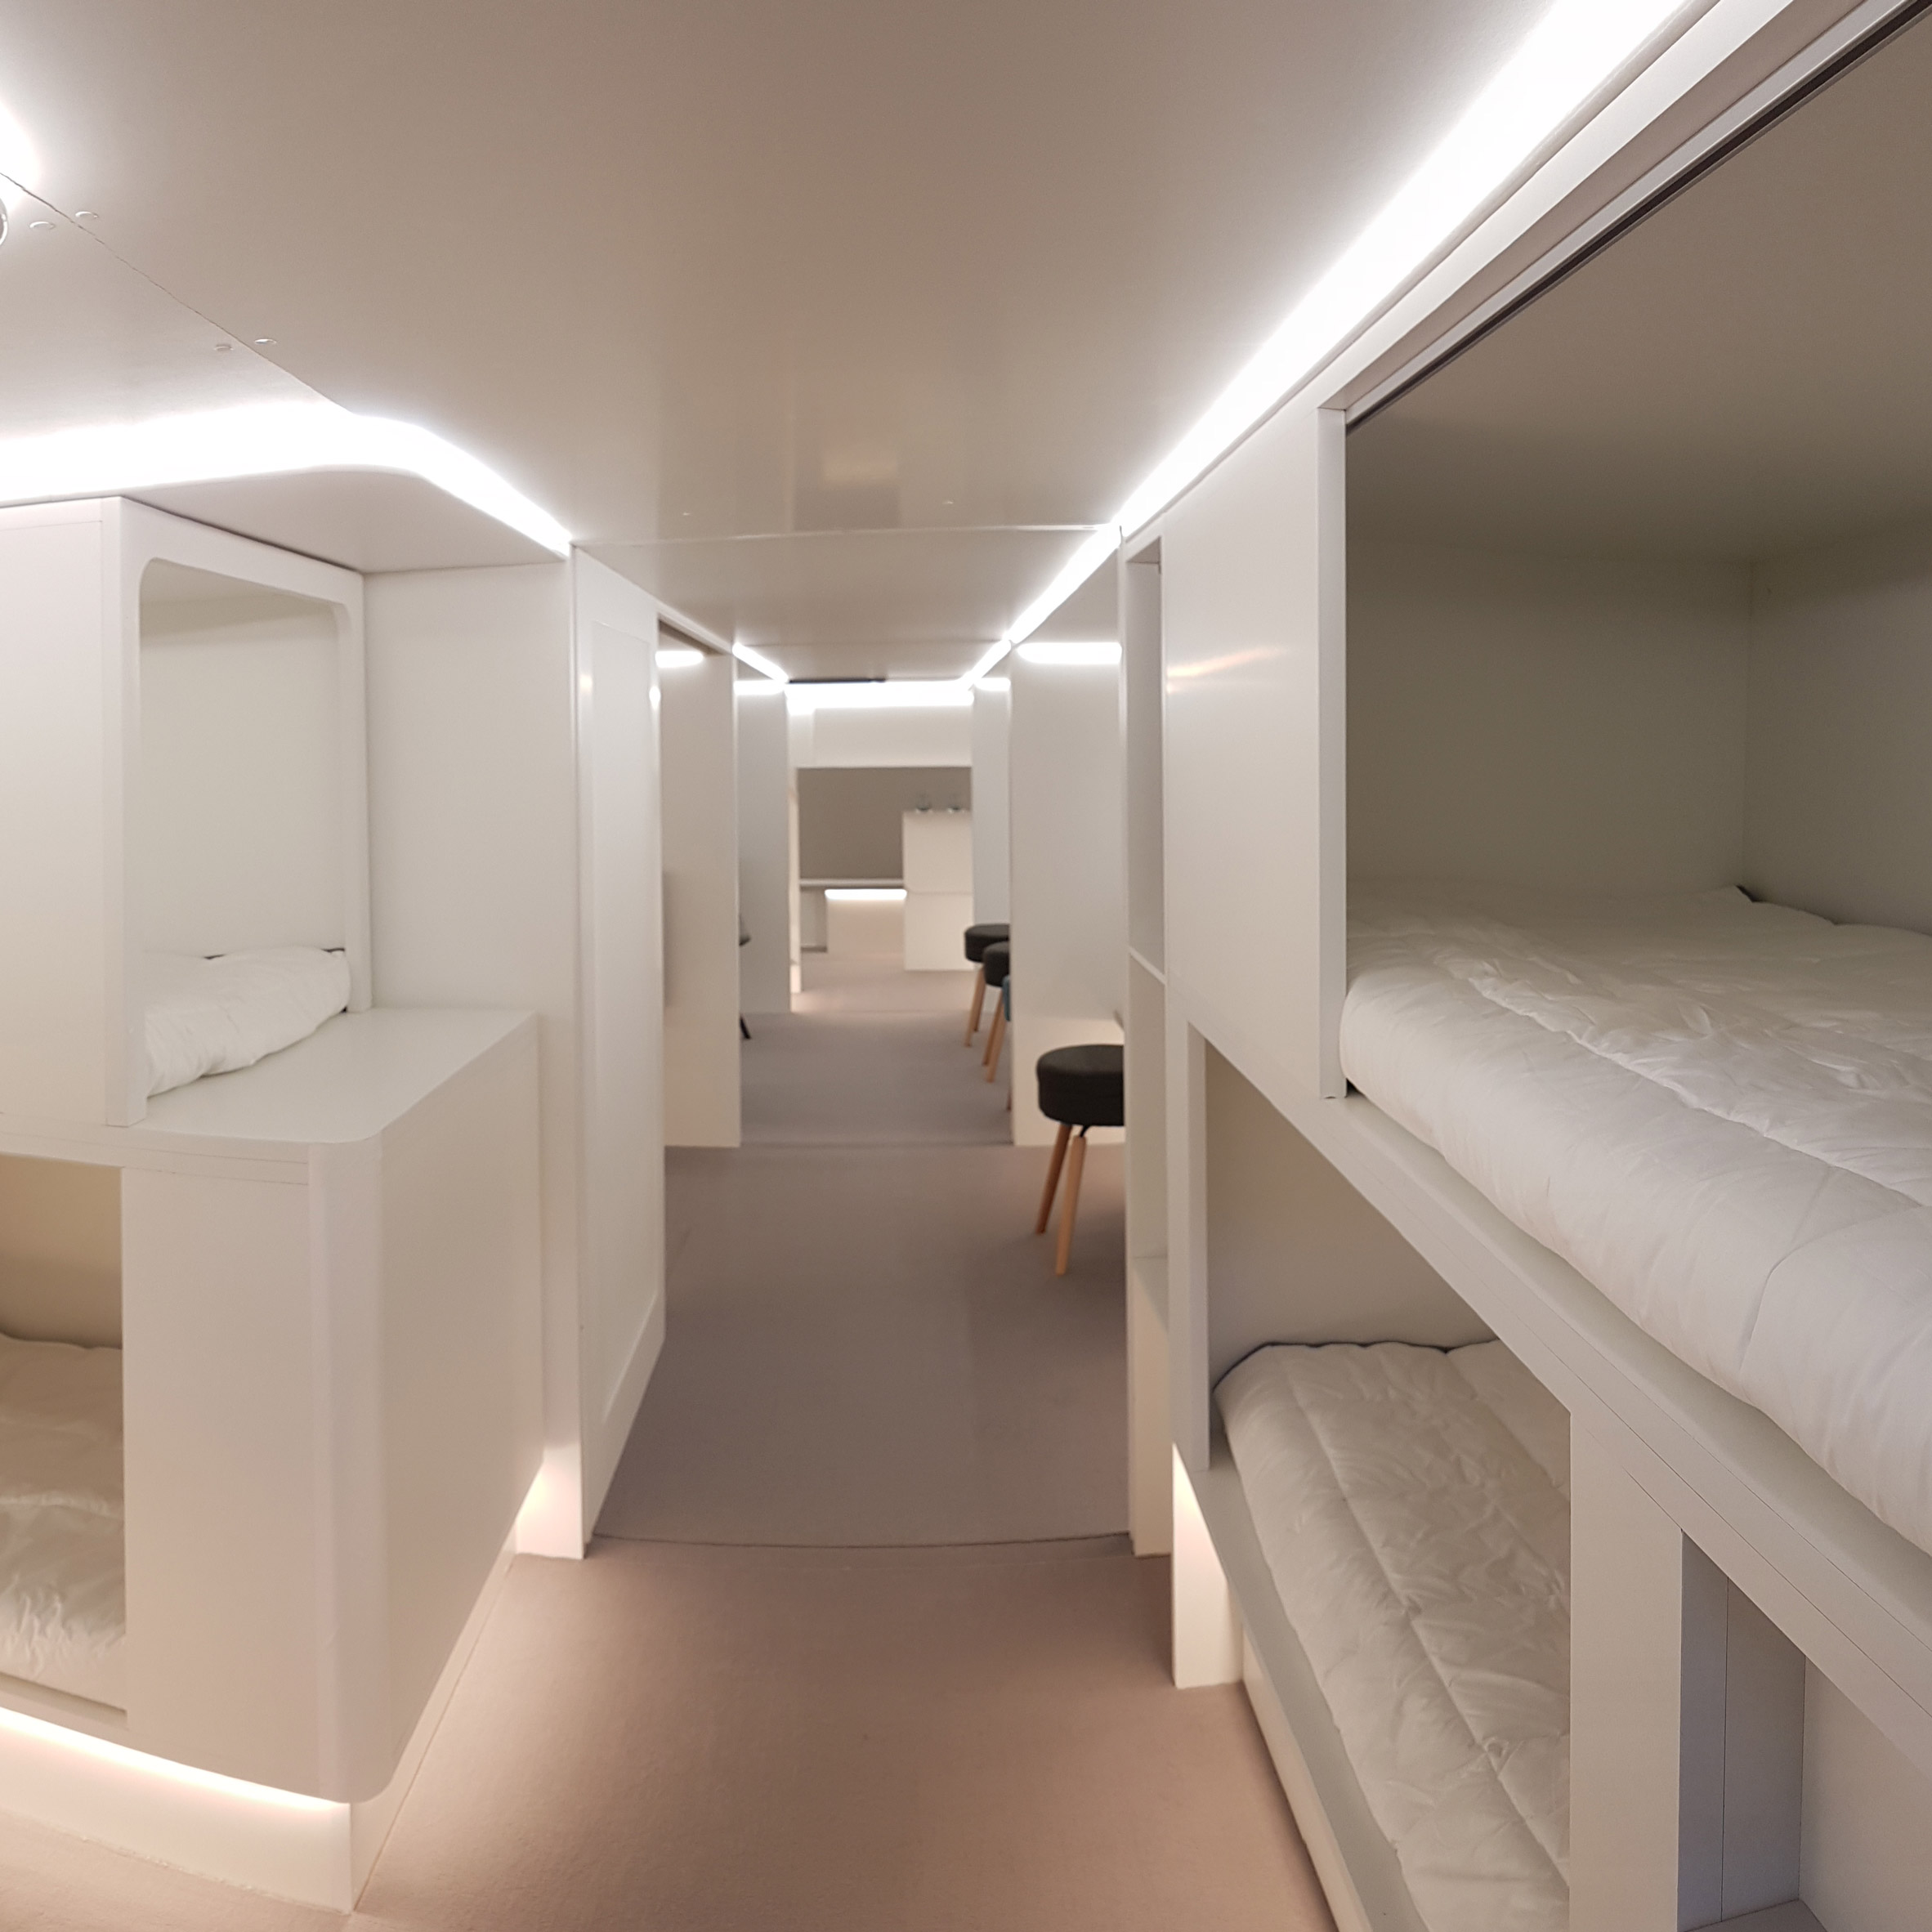 Picture of: Airbus Could Install Bunk Beds On Passenger Planes By 2020